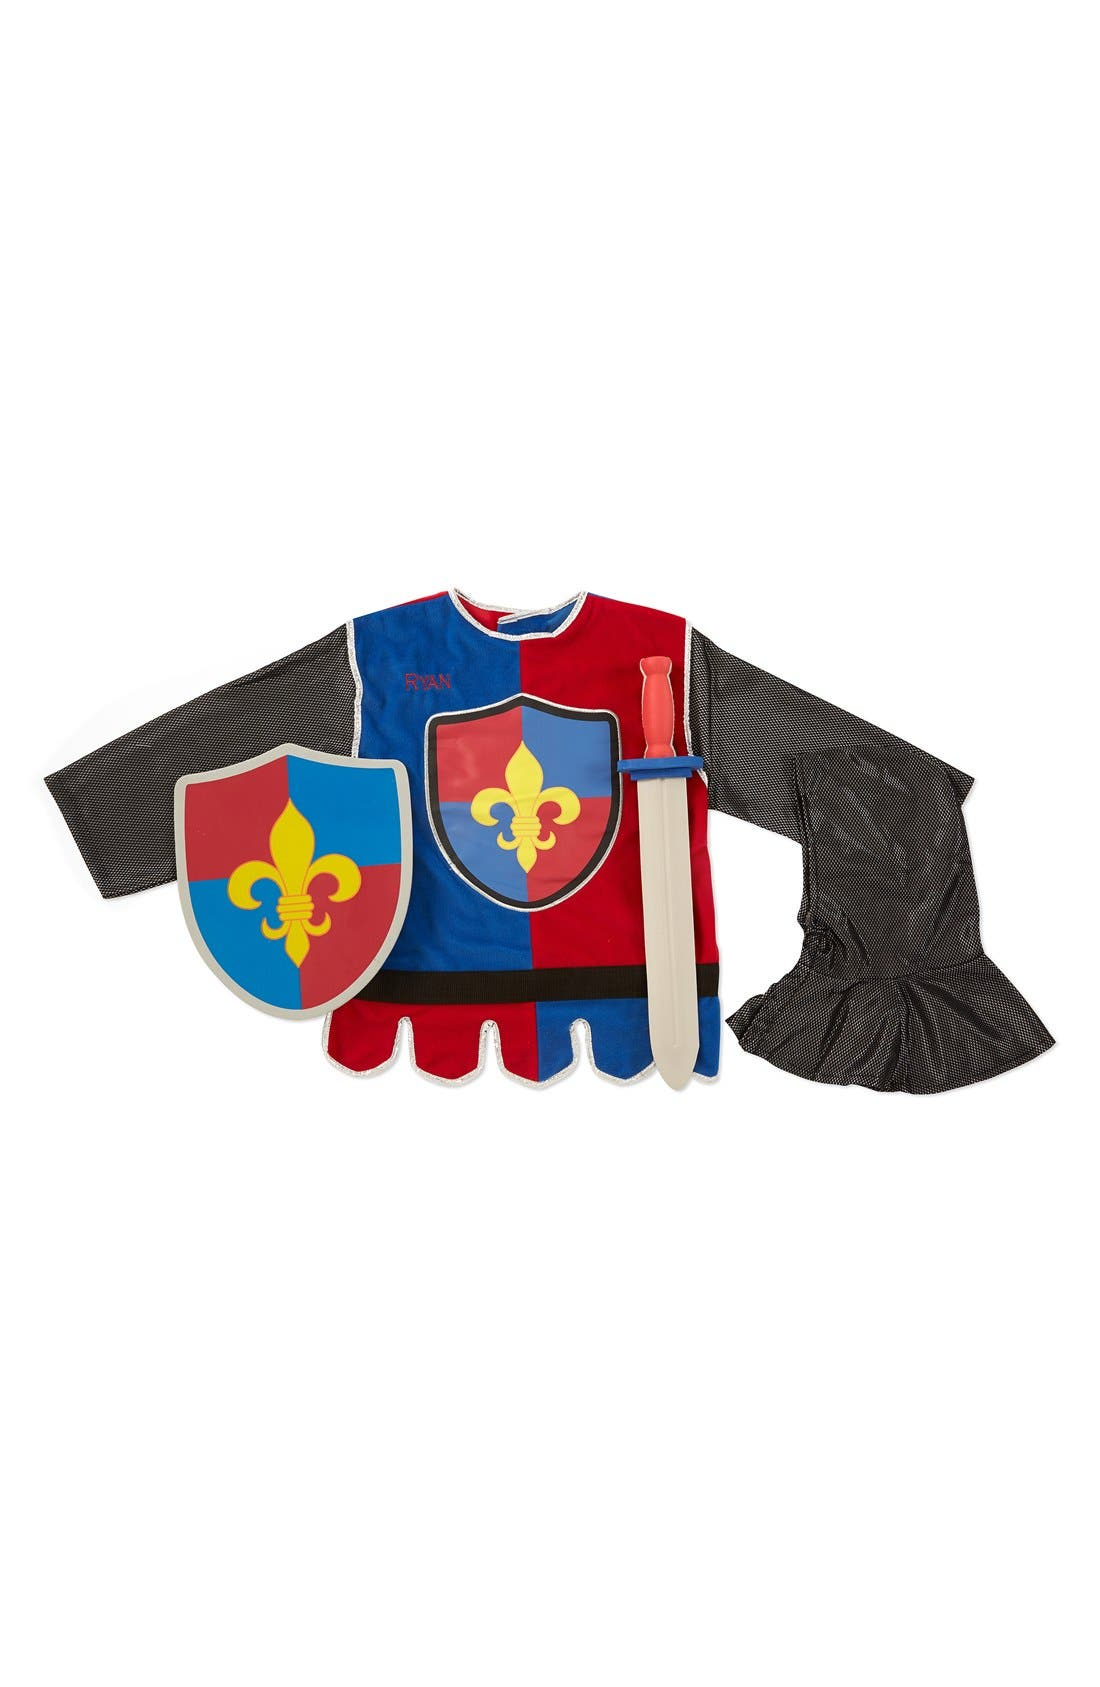 'Knight' Personalized Costume Set,                         Main,                         color, Red